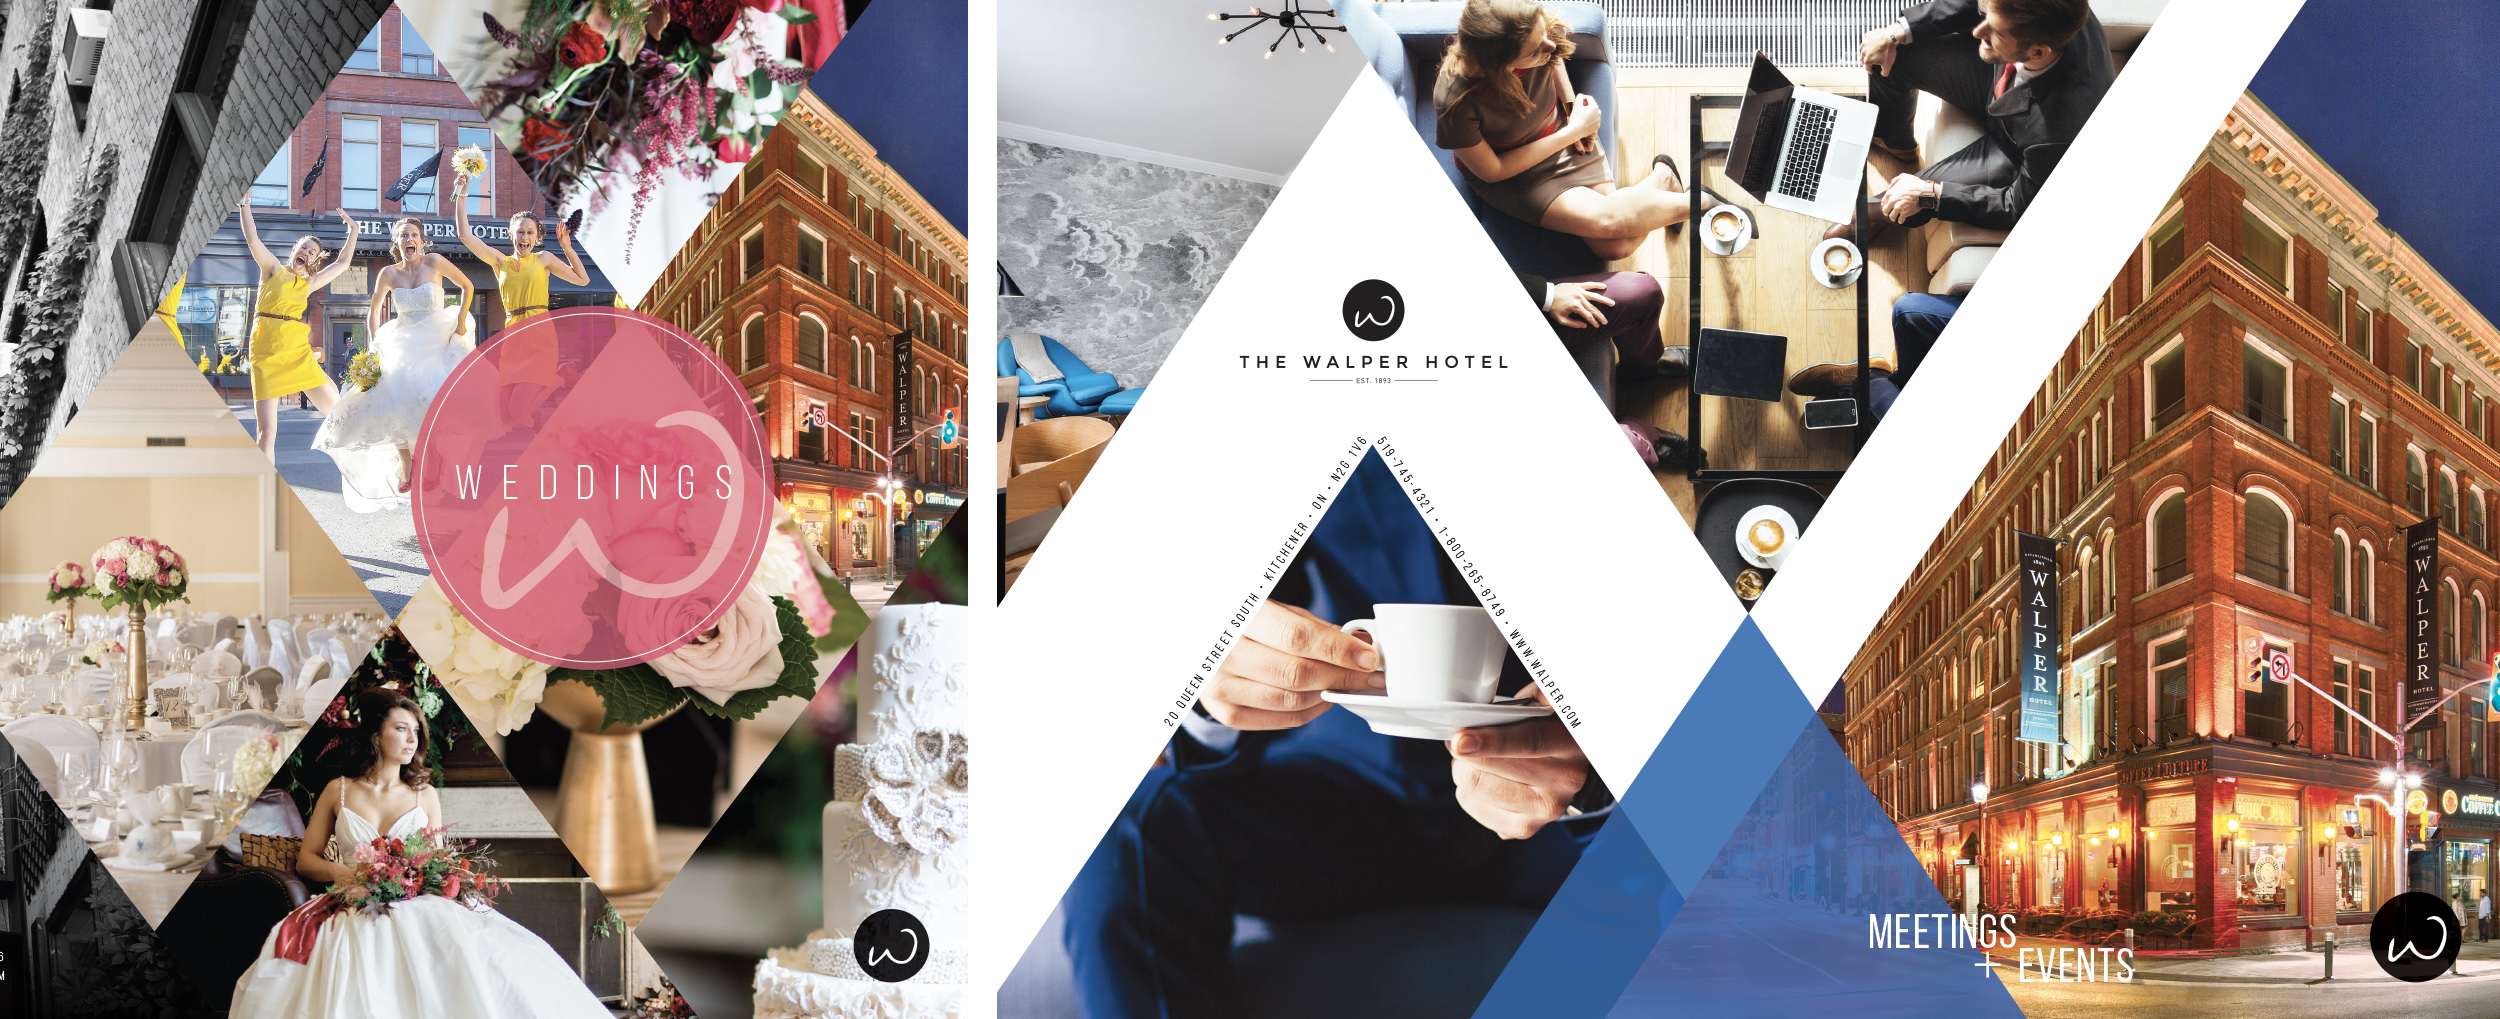 the walper hotel brochures